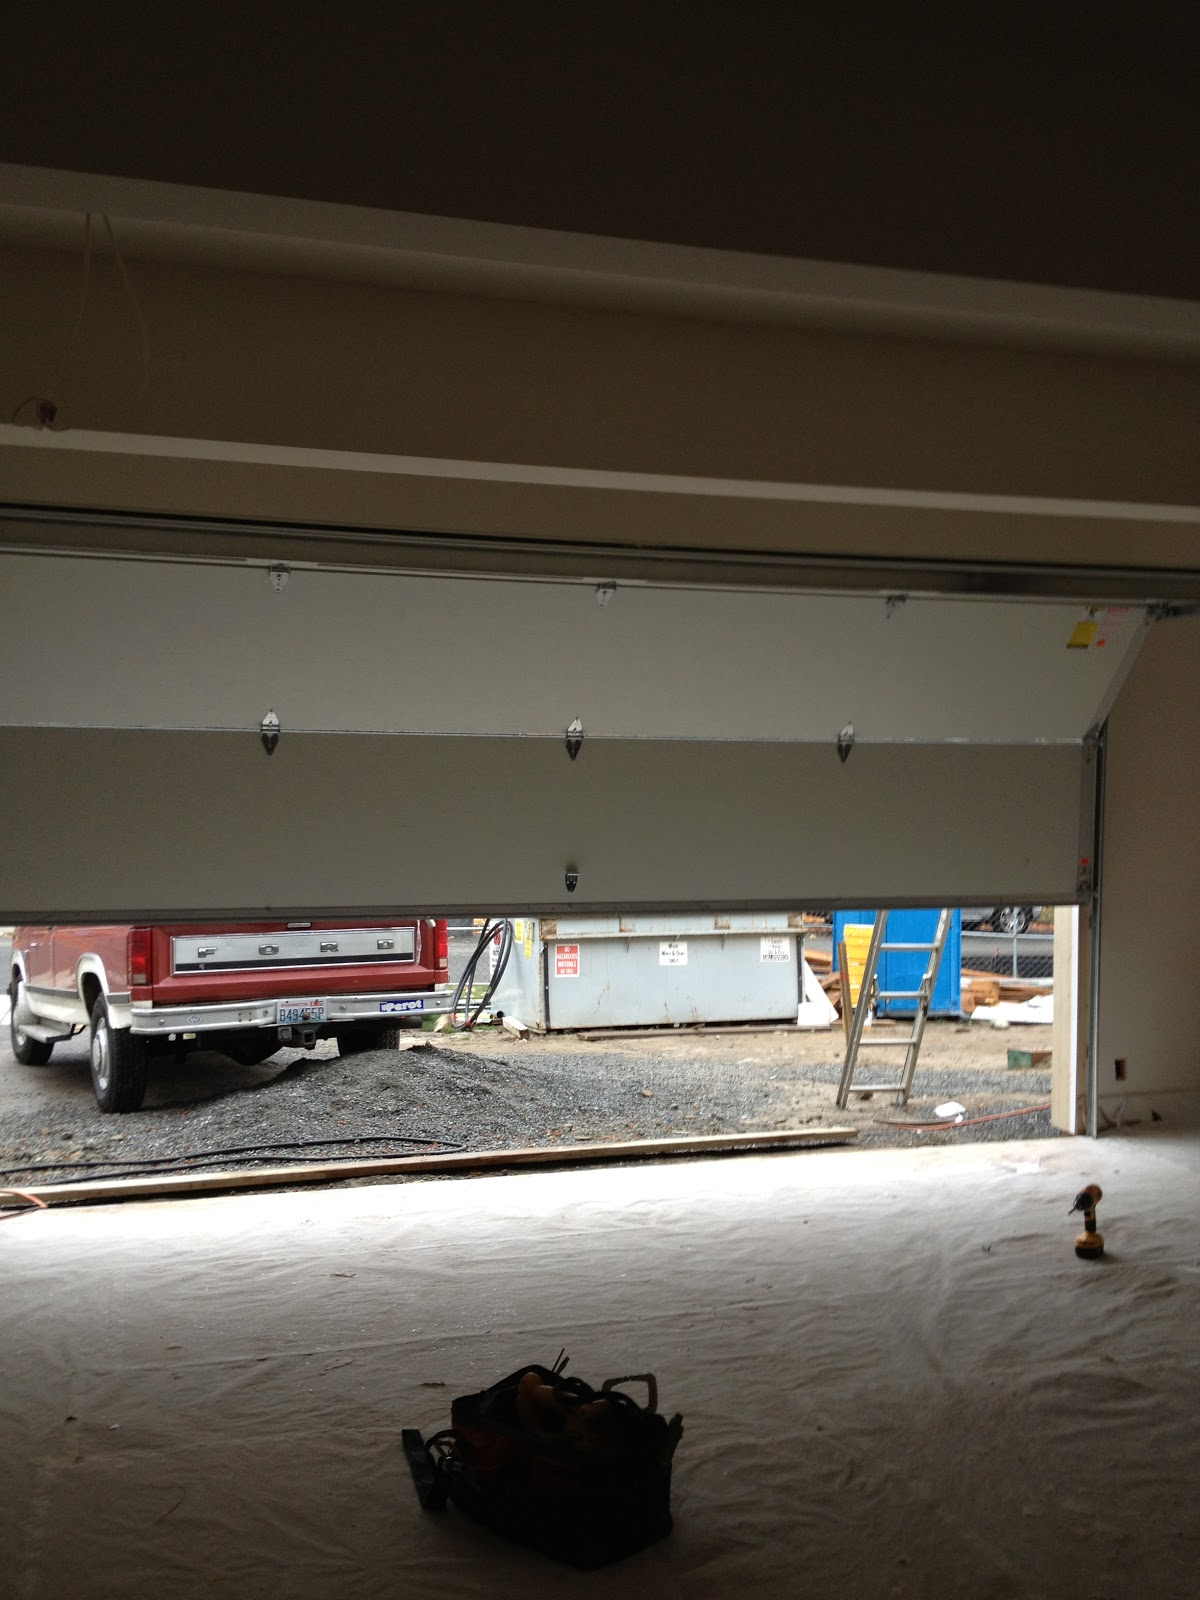 1600 #1477B7 Garage Door Installation Tax Credit Garage Door Installation save image Garage Doors Installers 37771200